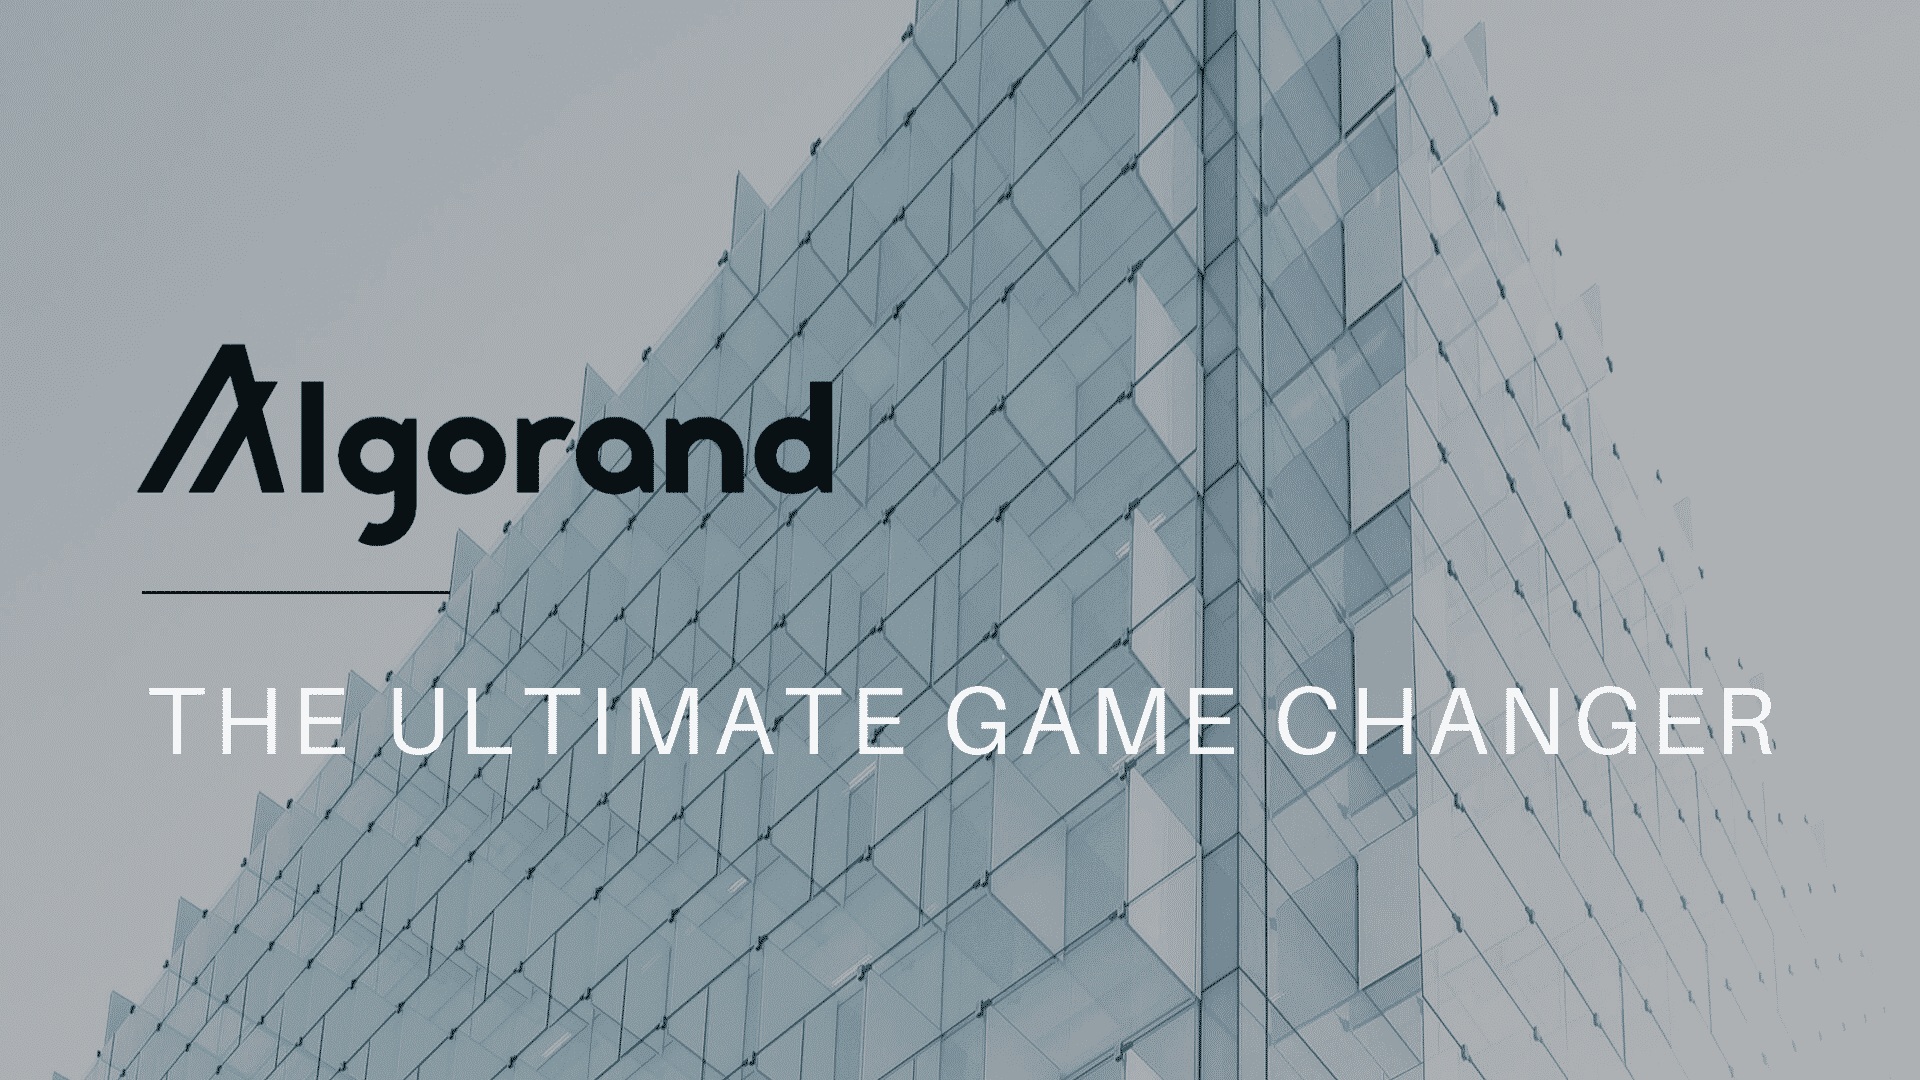 Algorand (ALGO): The ultimate game changer